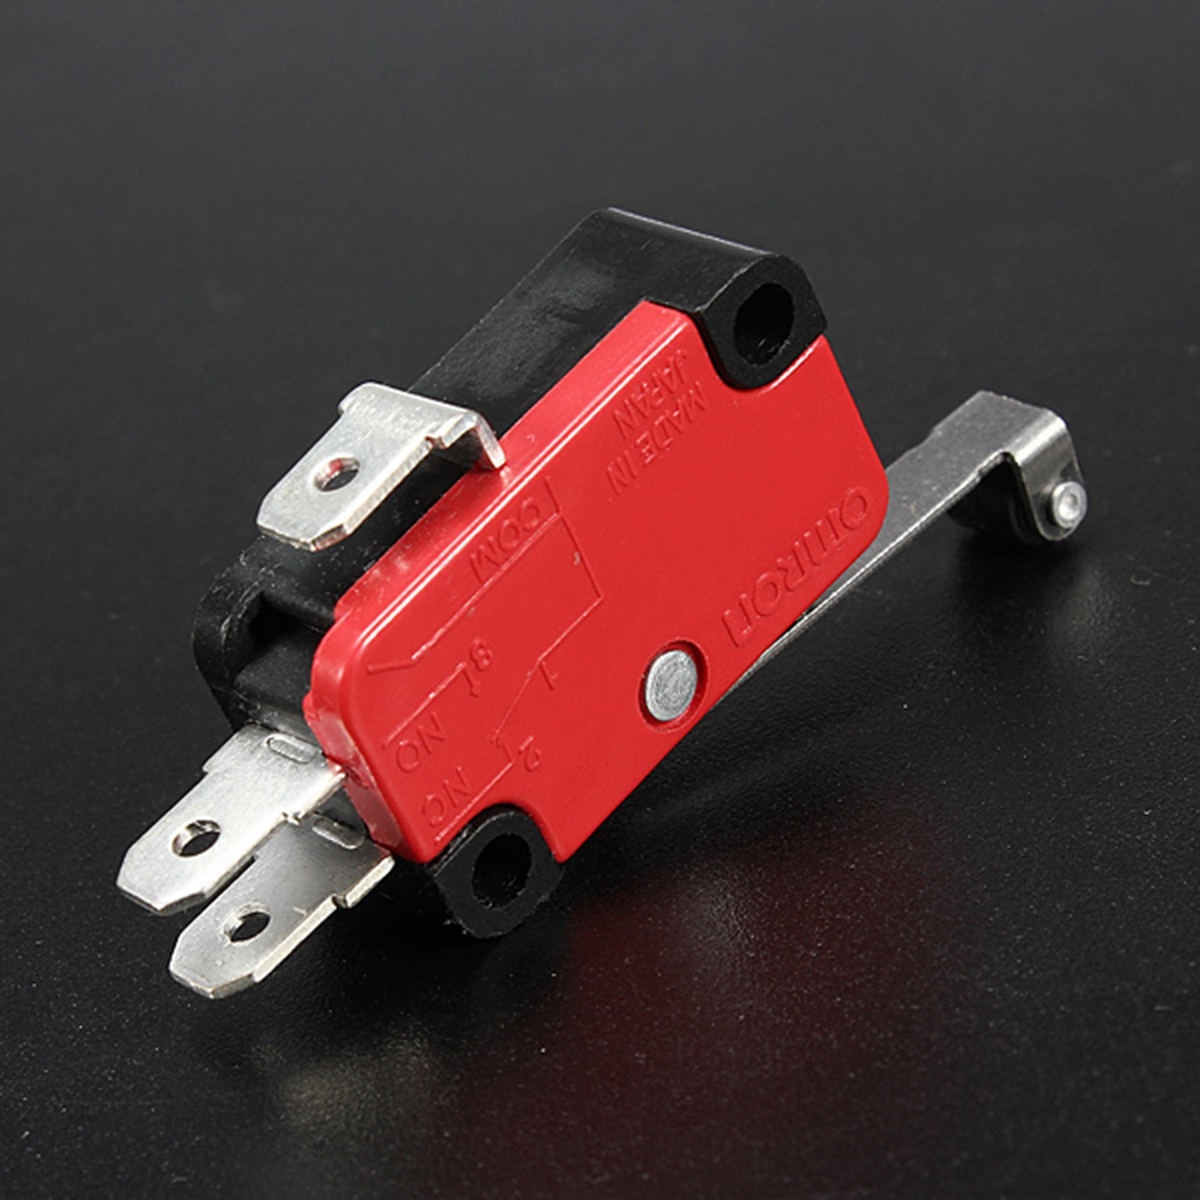 20pcs Micro Toggle Switch AC 250V 15A V-156-1C25 SPDT Roller Lever